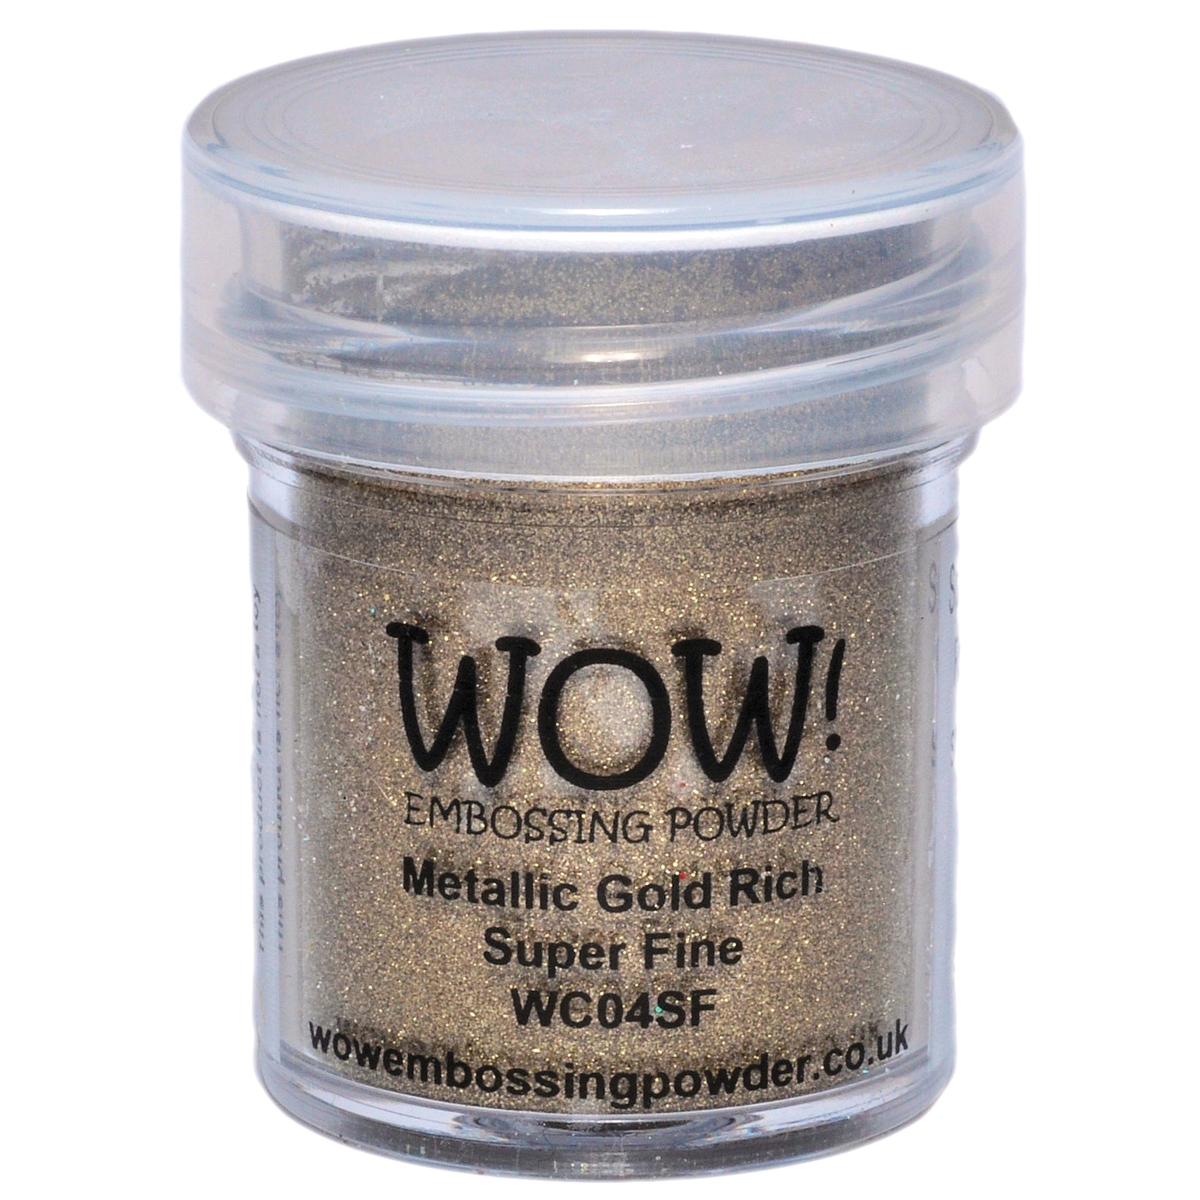 WOW! Embossing Powder Super Fine 15ml-Gold Rich